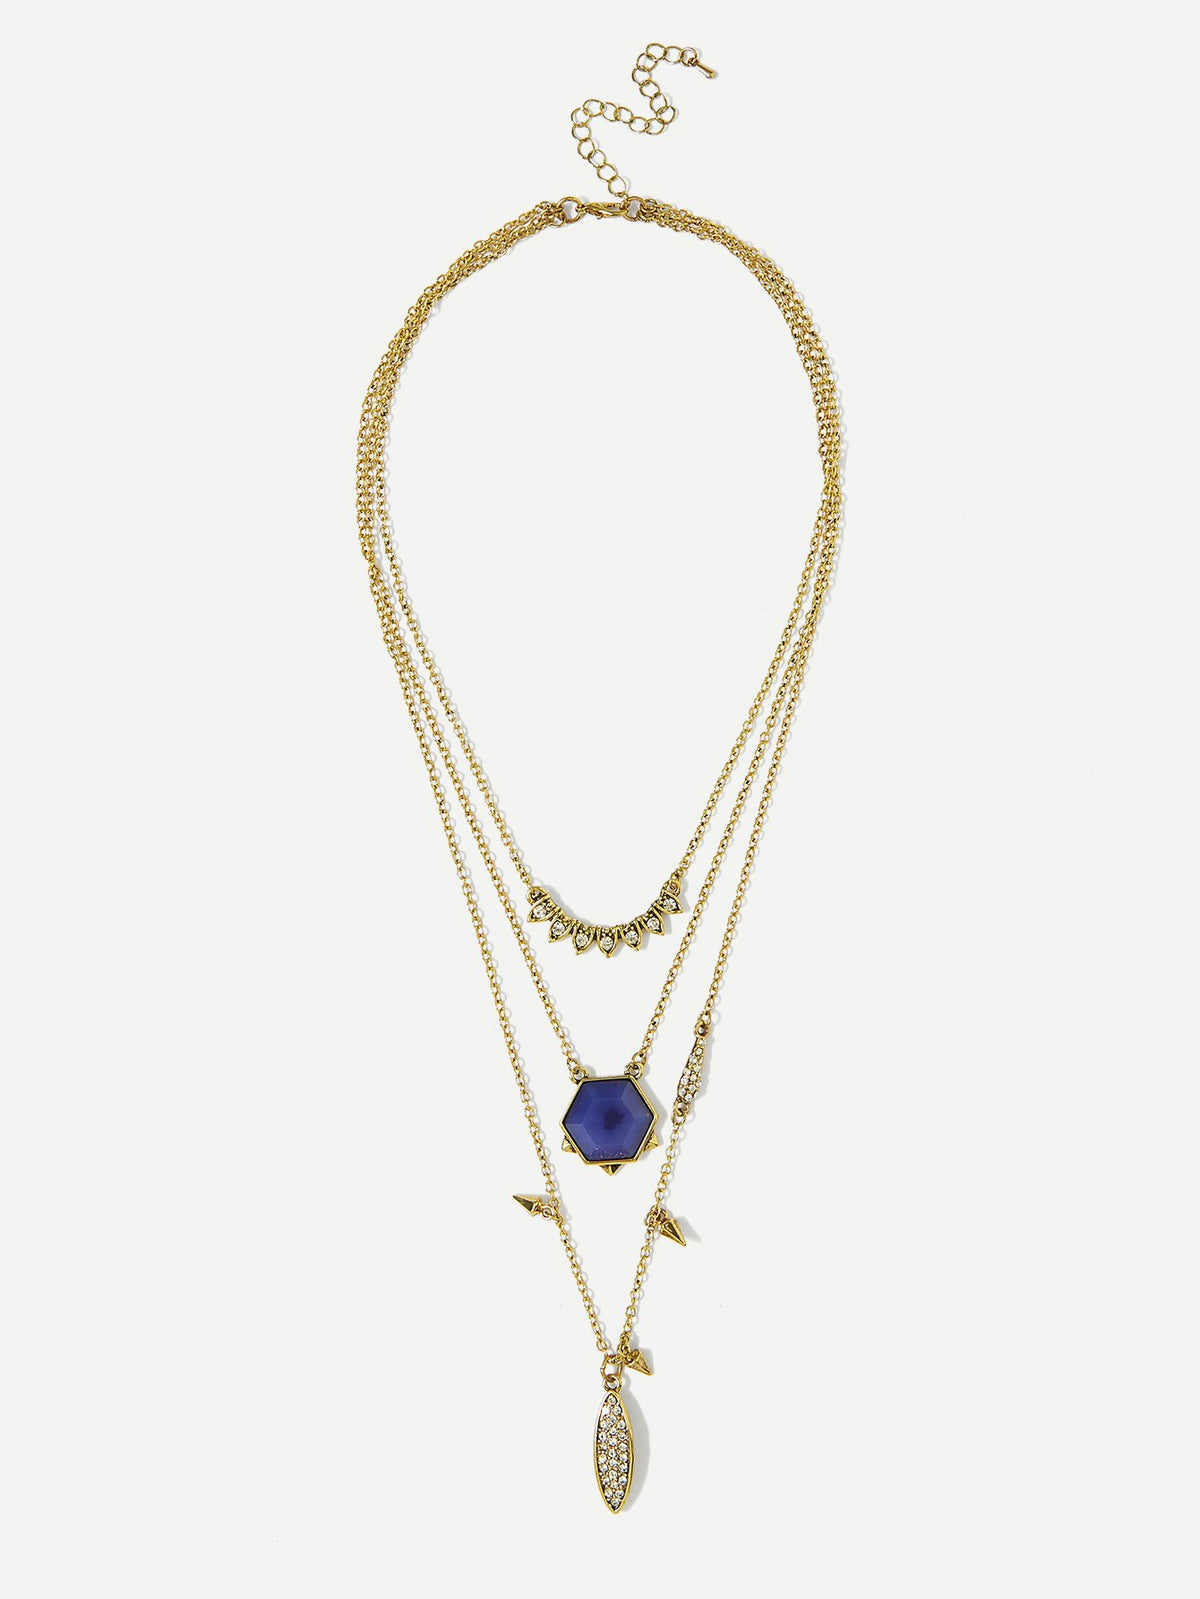 Gemstone Pendant Layered Chain Necklace